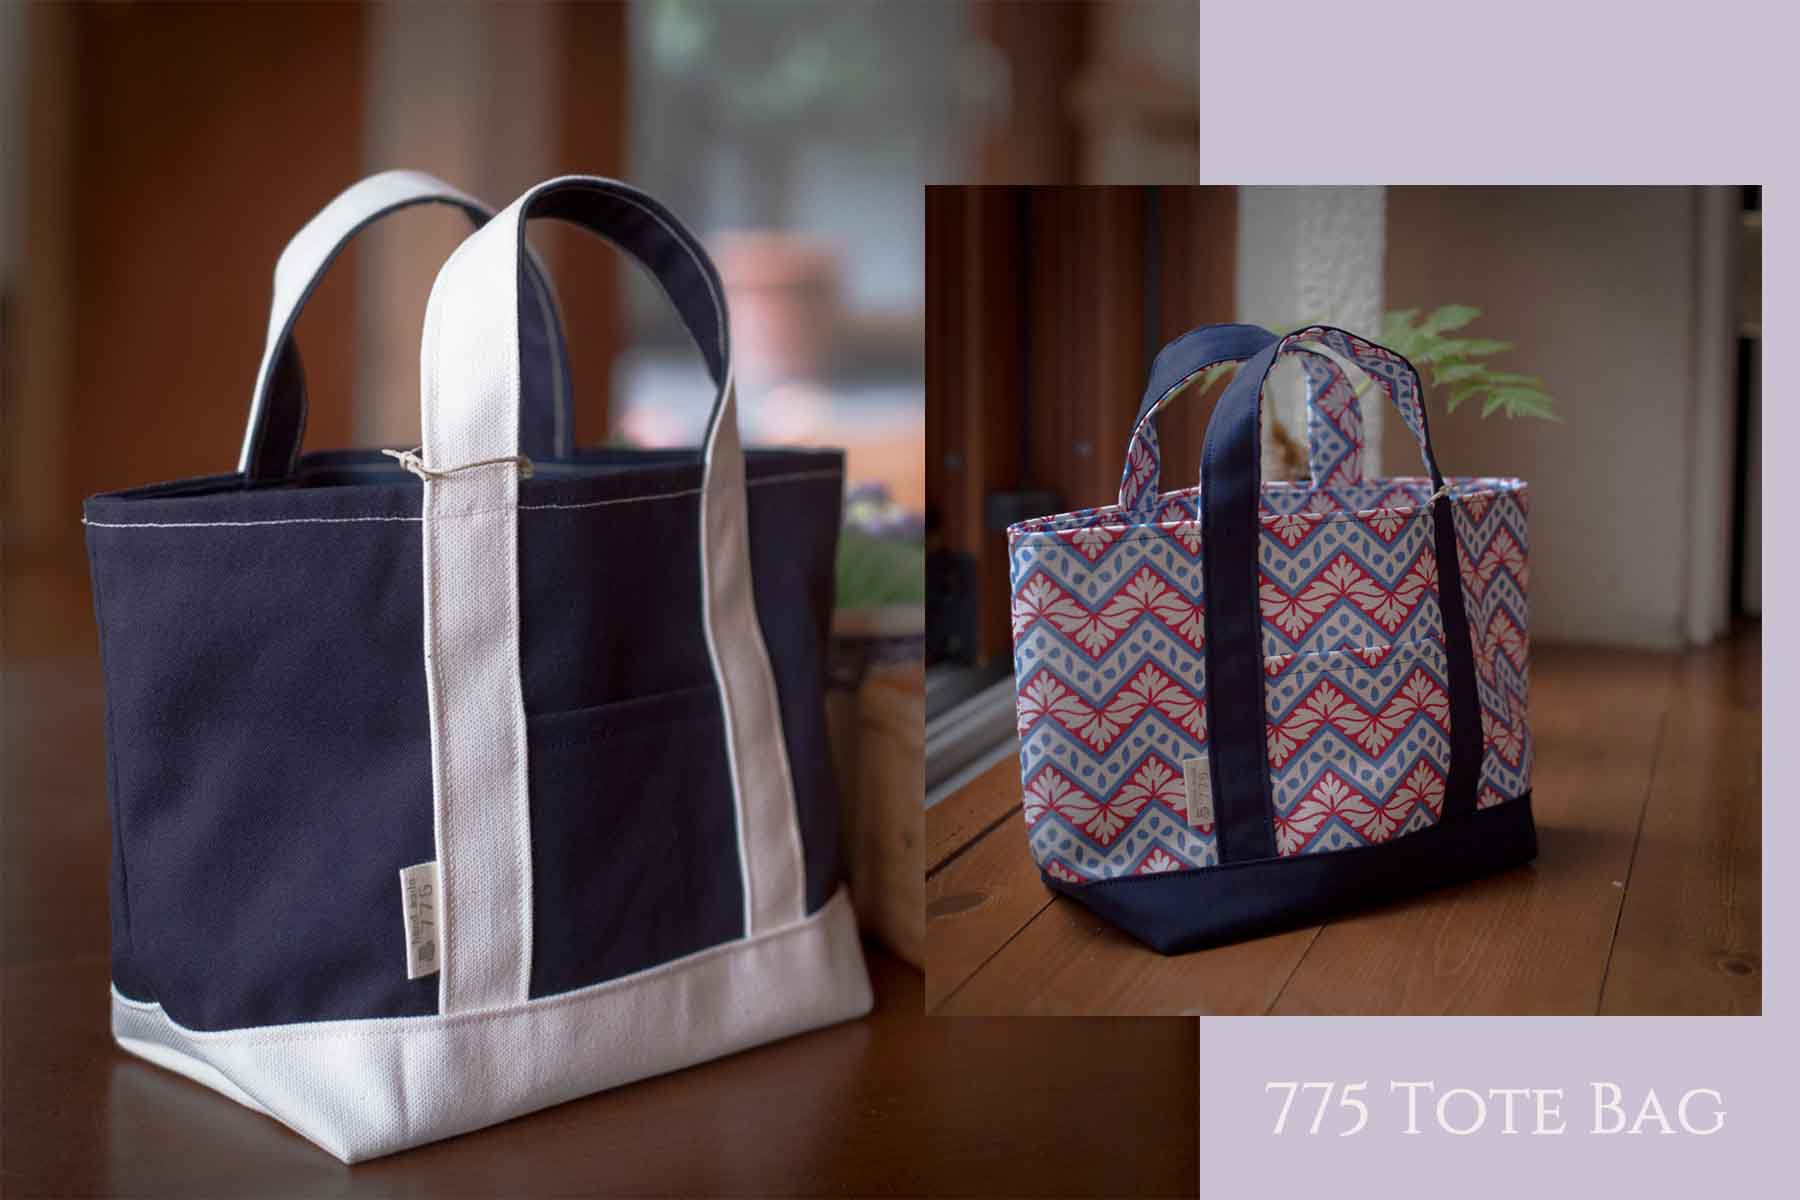 775 tote.2 psd